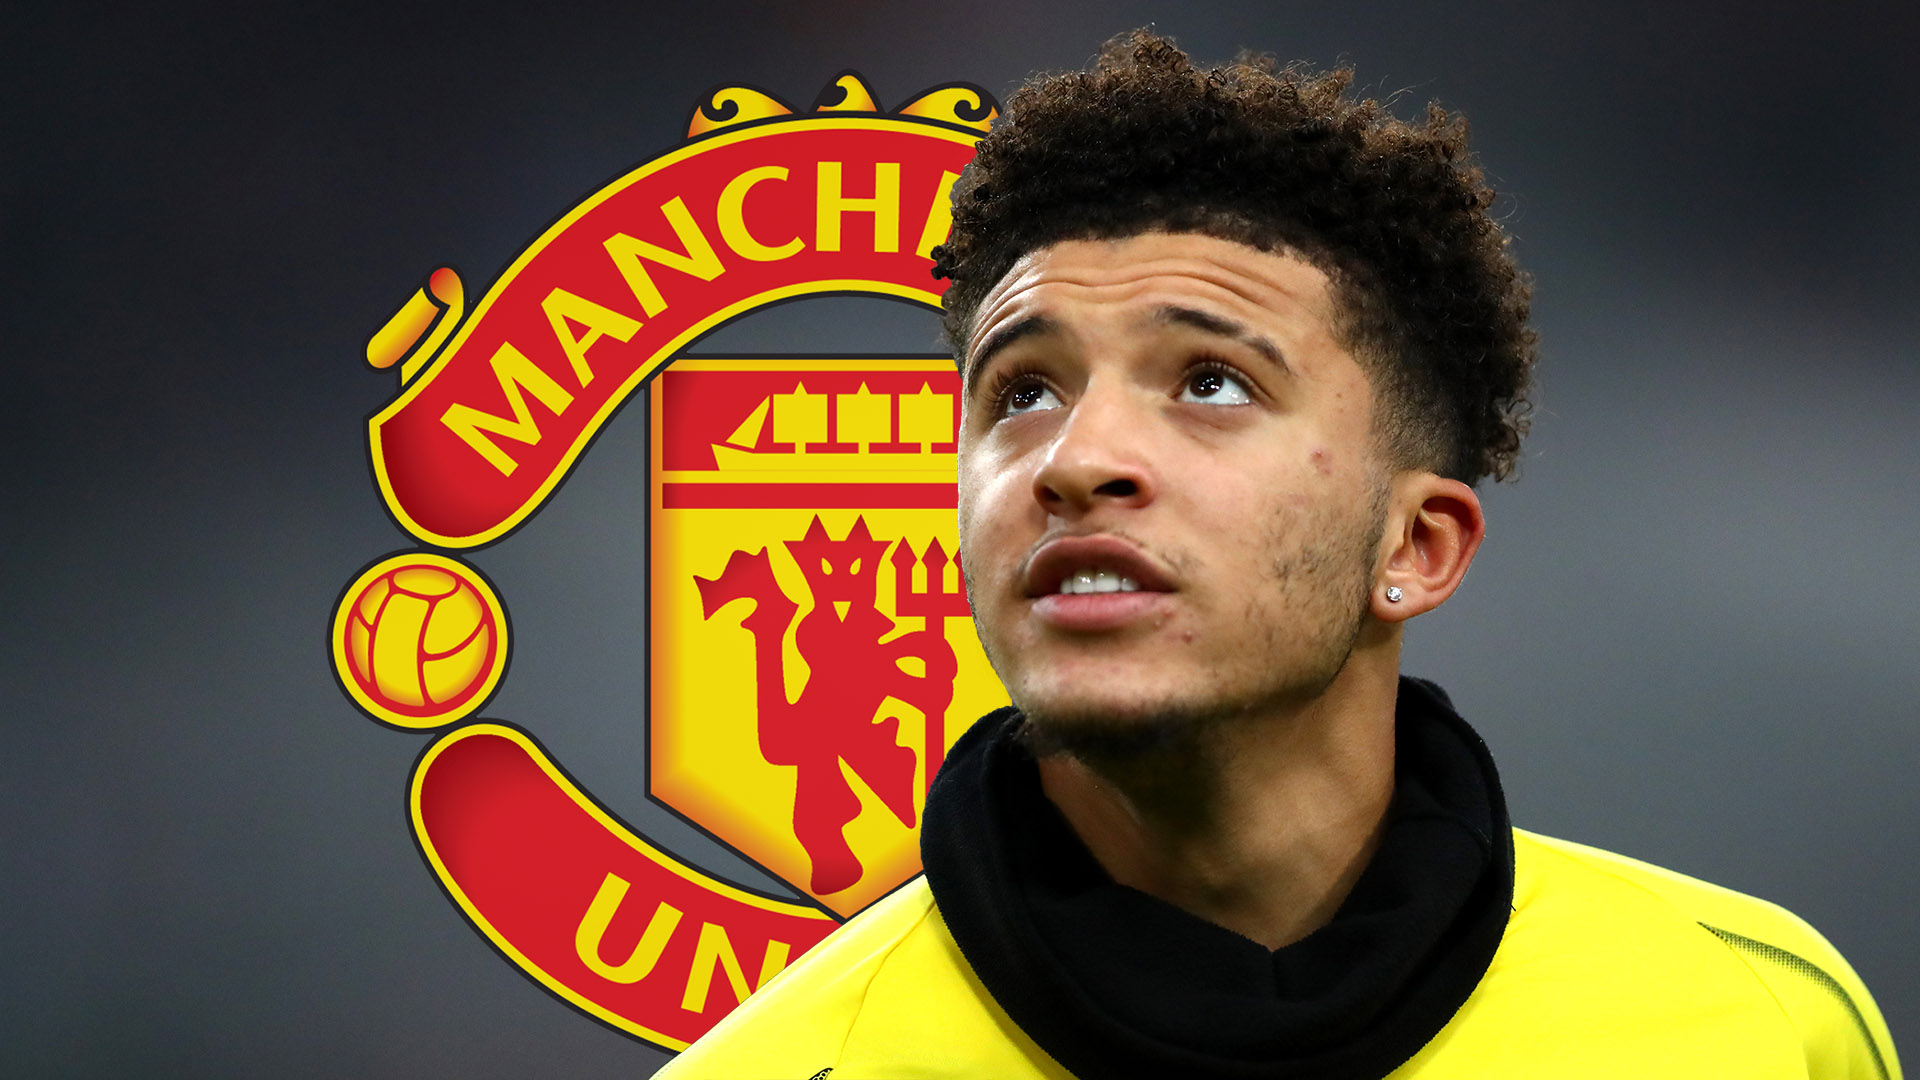 Transfer news and rumours LIVE: Man Utd in touch with Sancho's agent